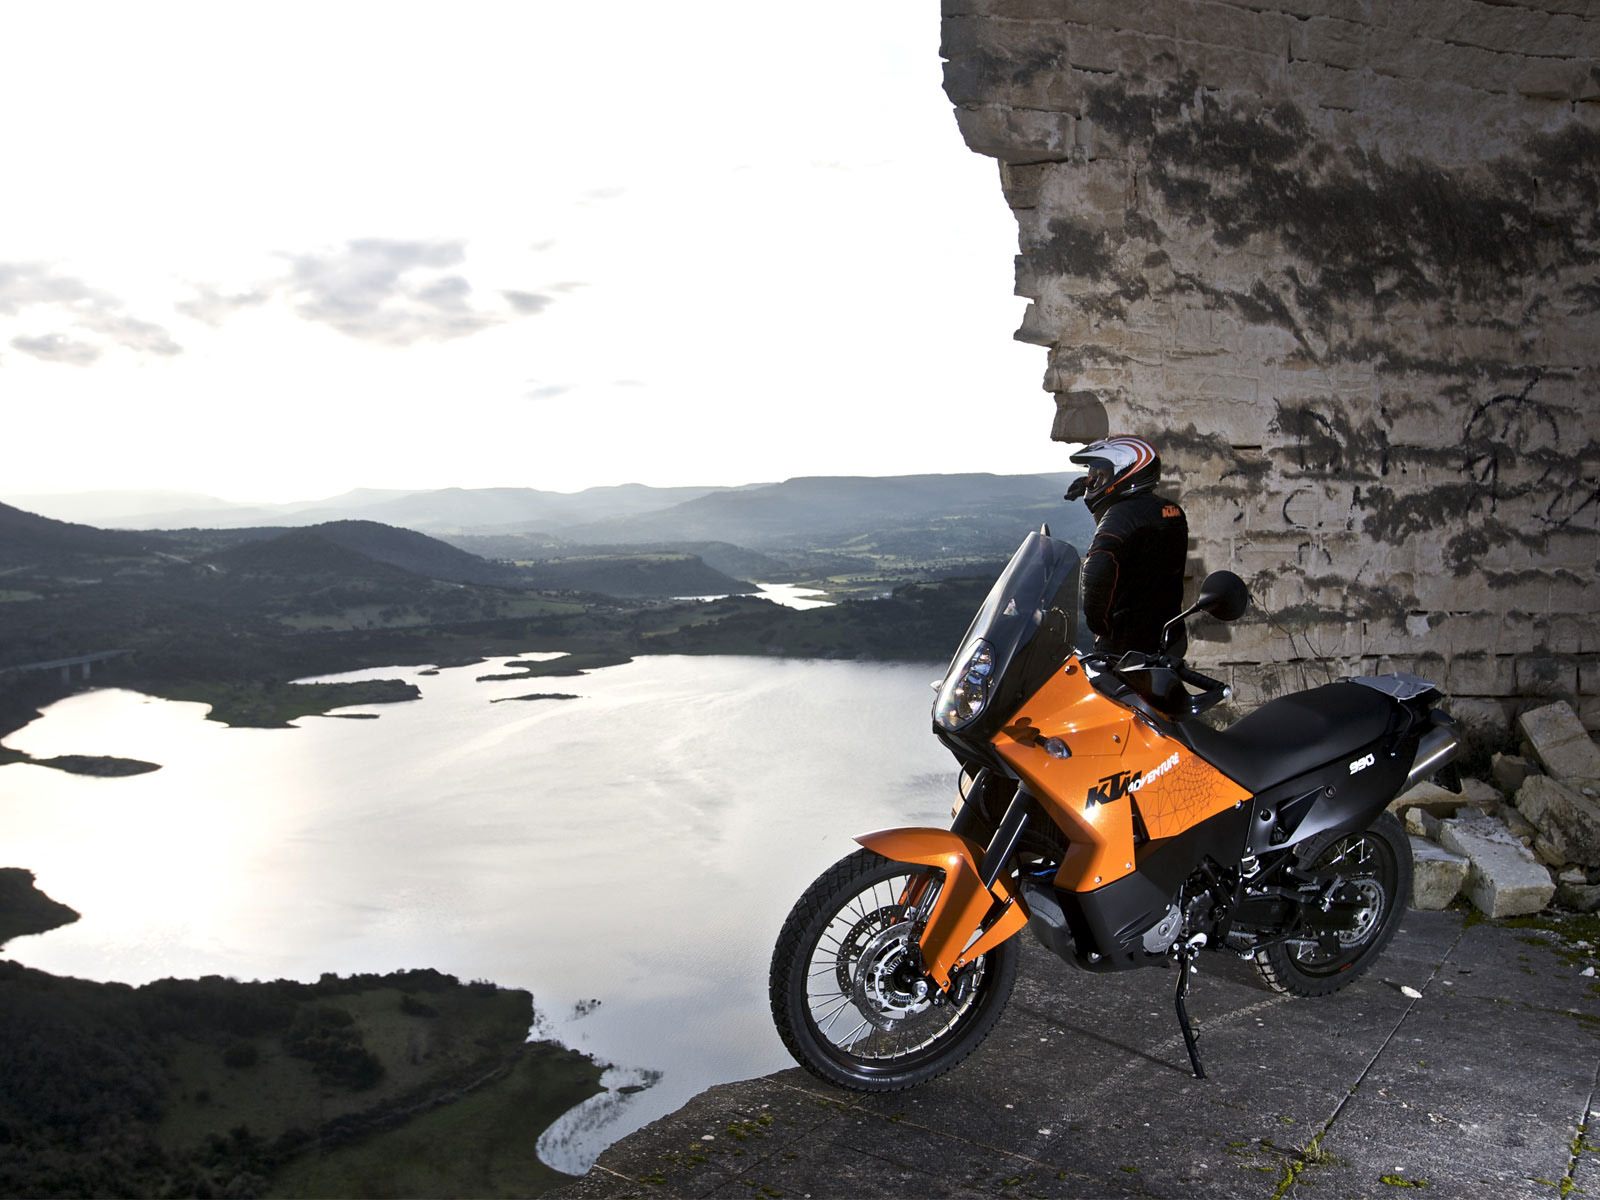 Ktm-990-Adventure-high-in-the-mountains-wallpaper_5745[1]